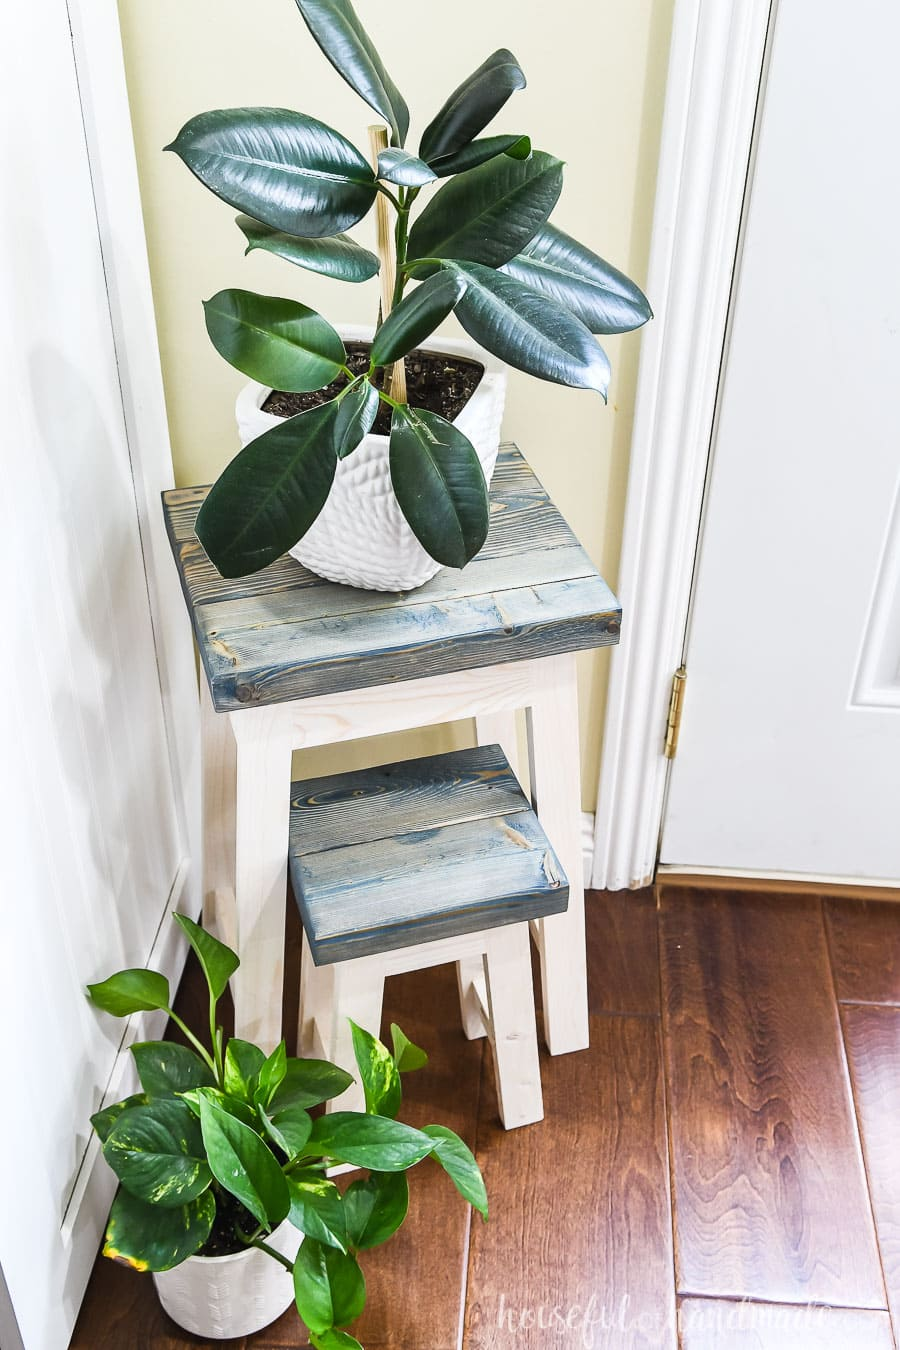 Two plant stands in the corner with the small one nesting under the larger one.